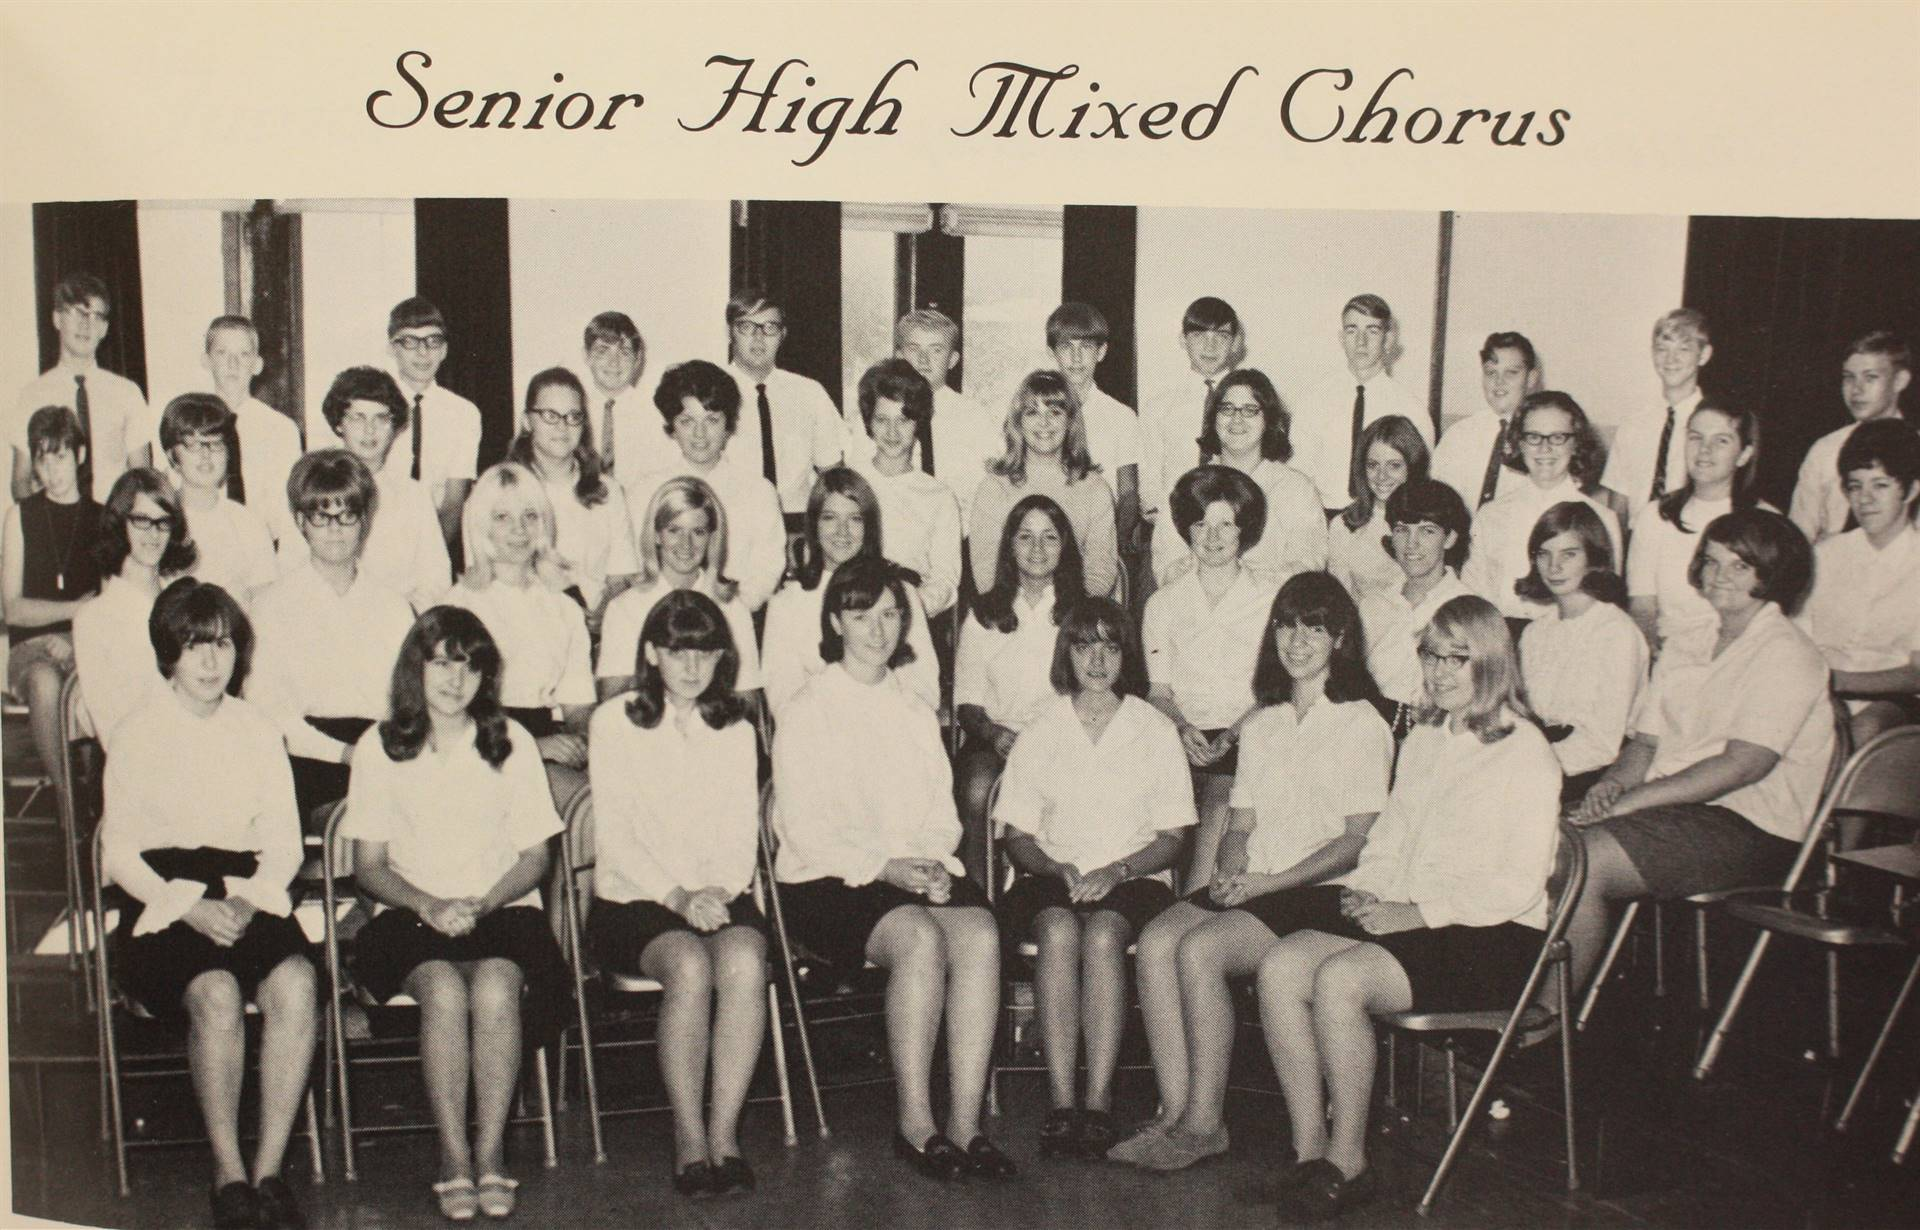 1970 Senior High Mixed Chorus